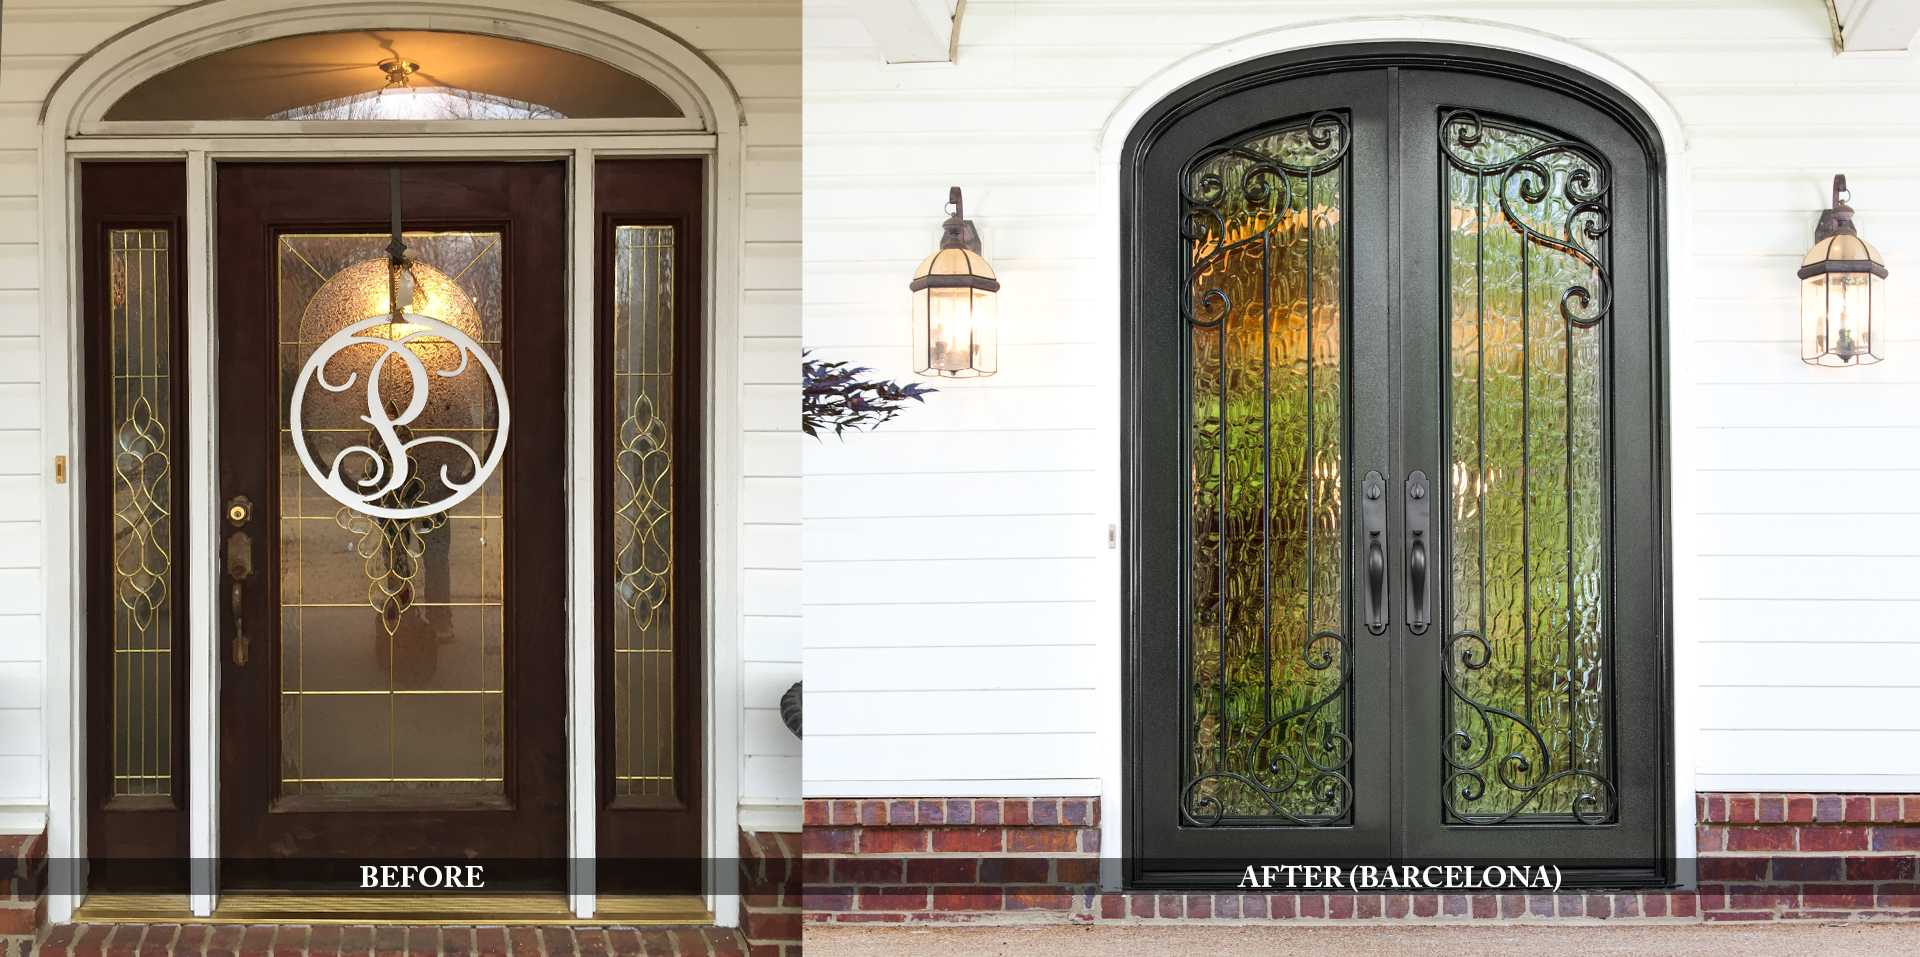 Beautiful residential entry doors before and after comparison